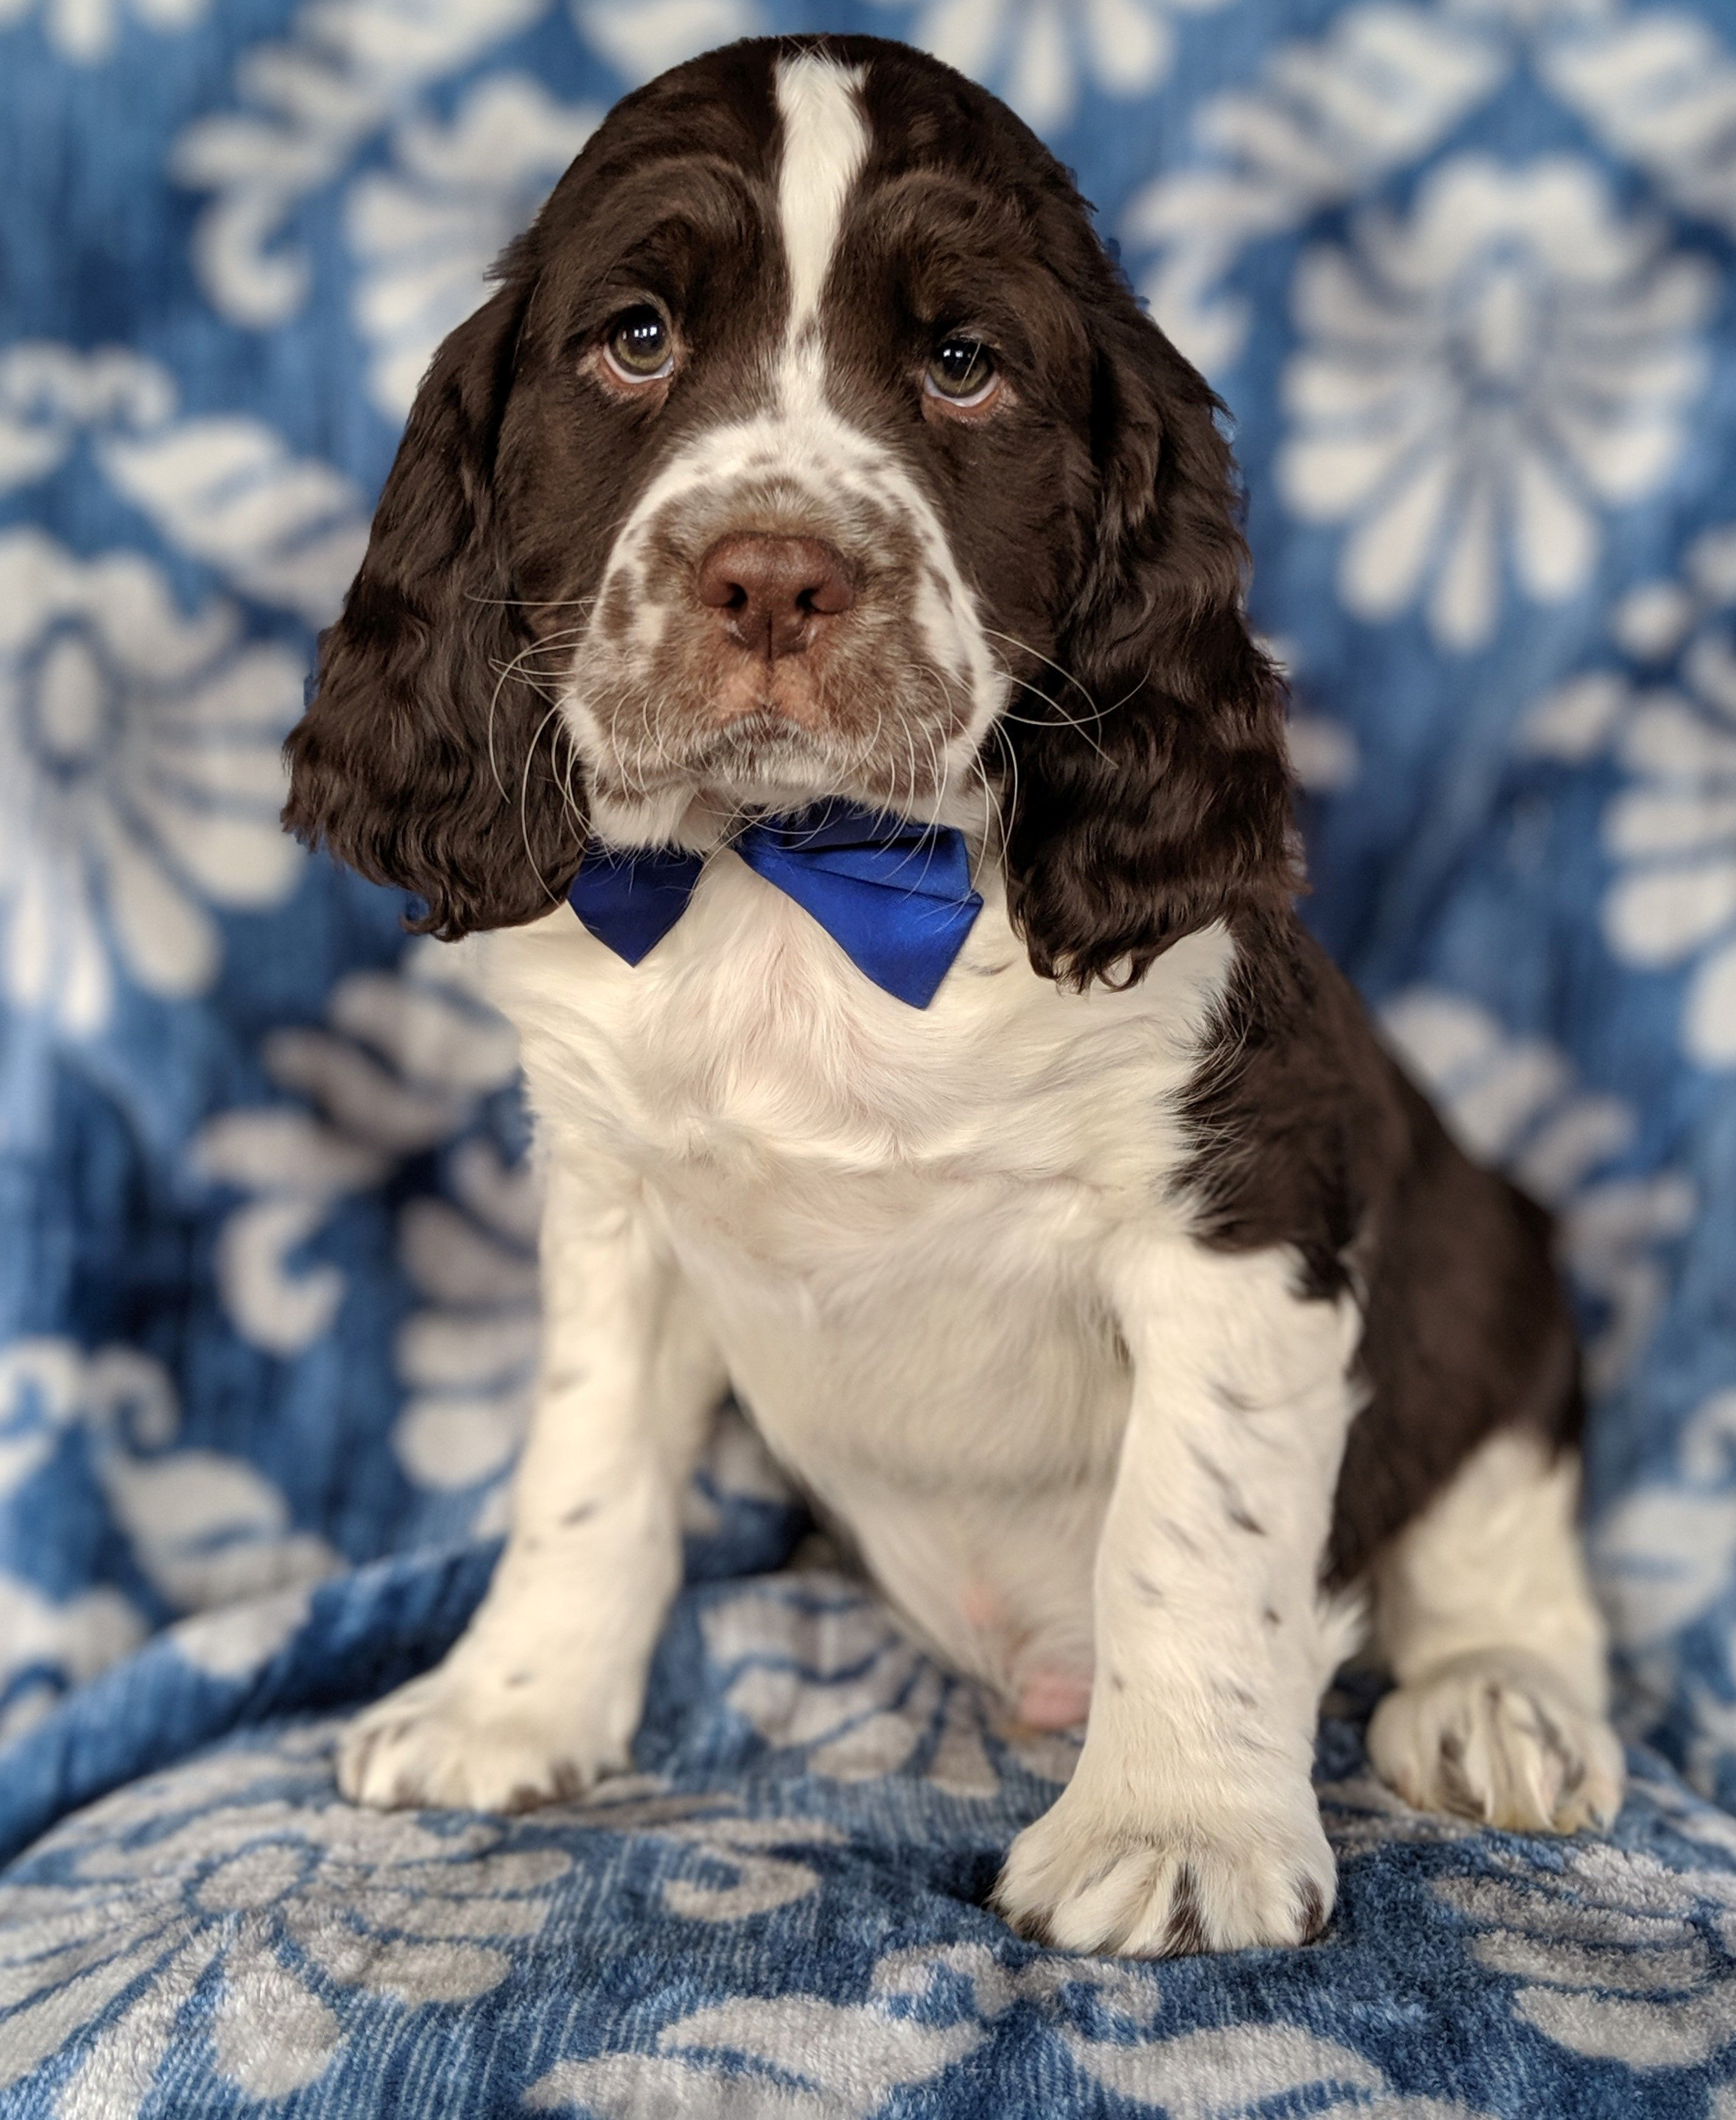 Relaxed Englishspringerspaniel English Springer Spaniel Puppy Springer Spaniel Puppies Spaniel Dog